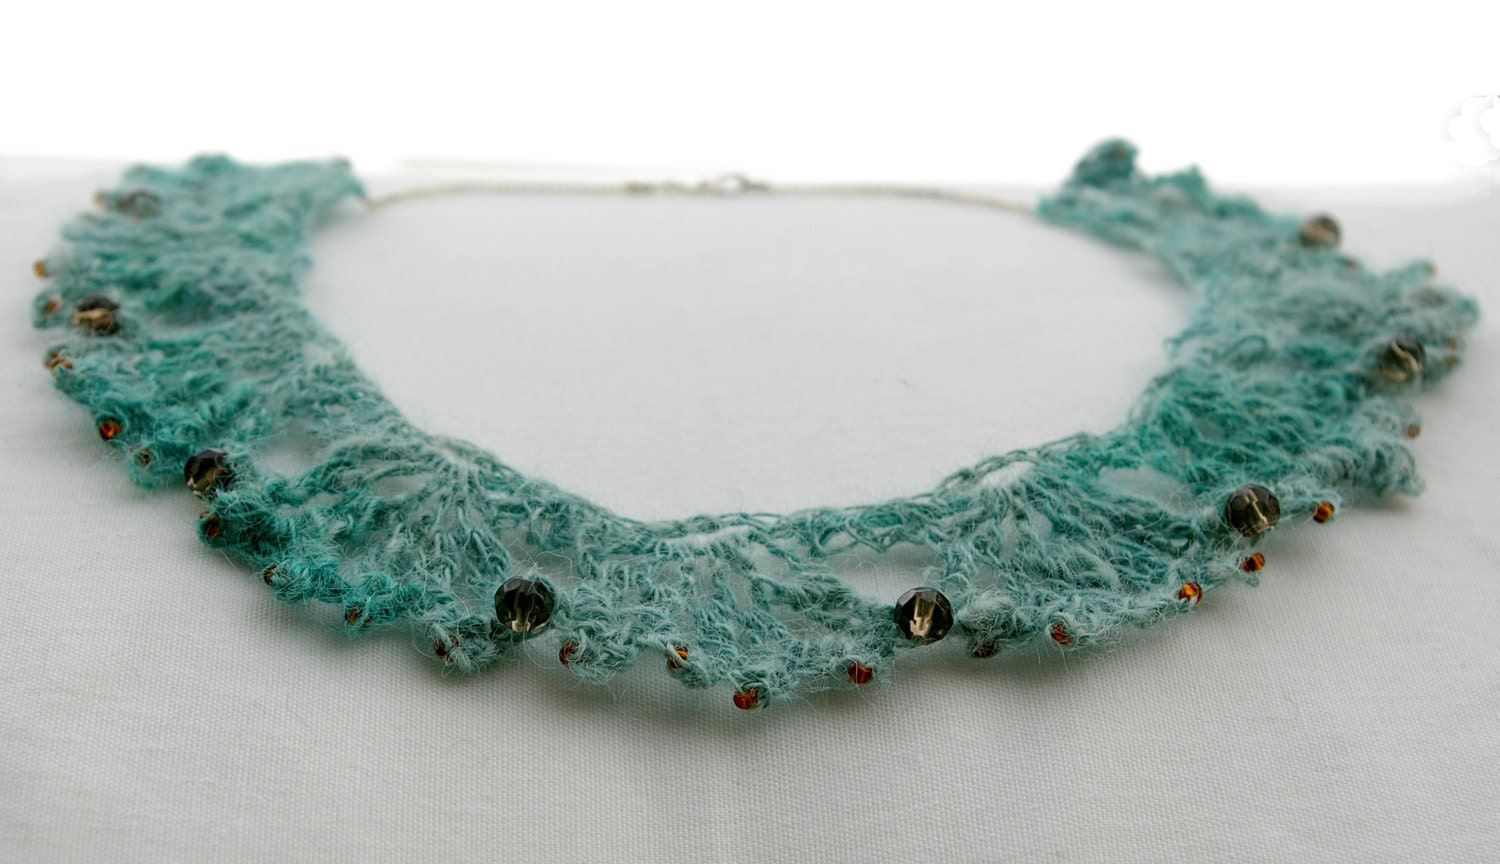 Crocheted necklace, turquoise lace whit glass beads